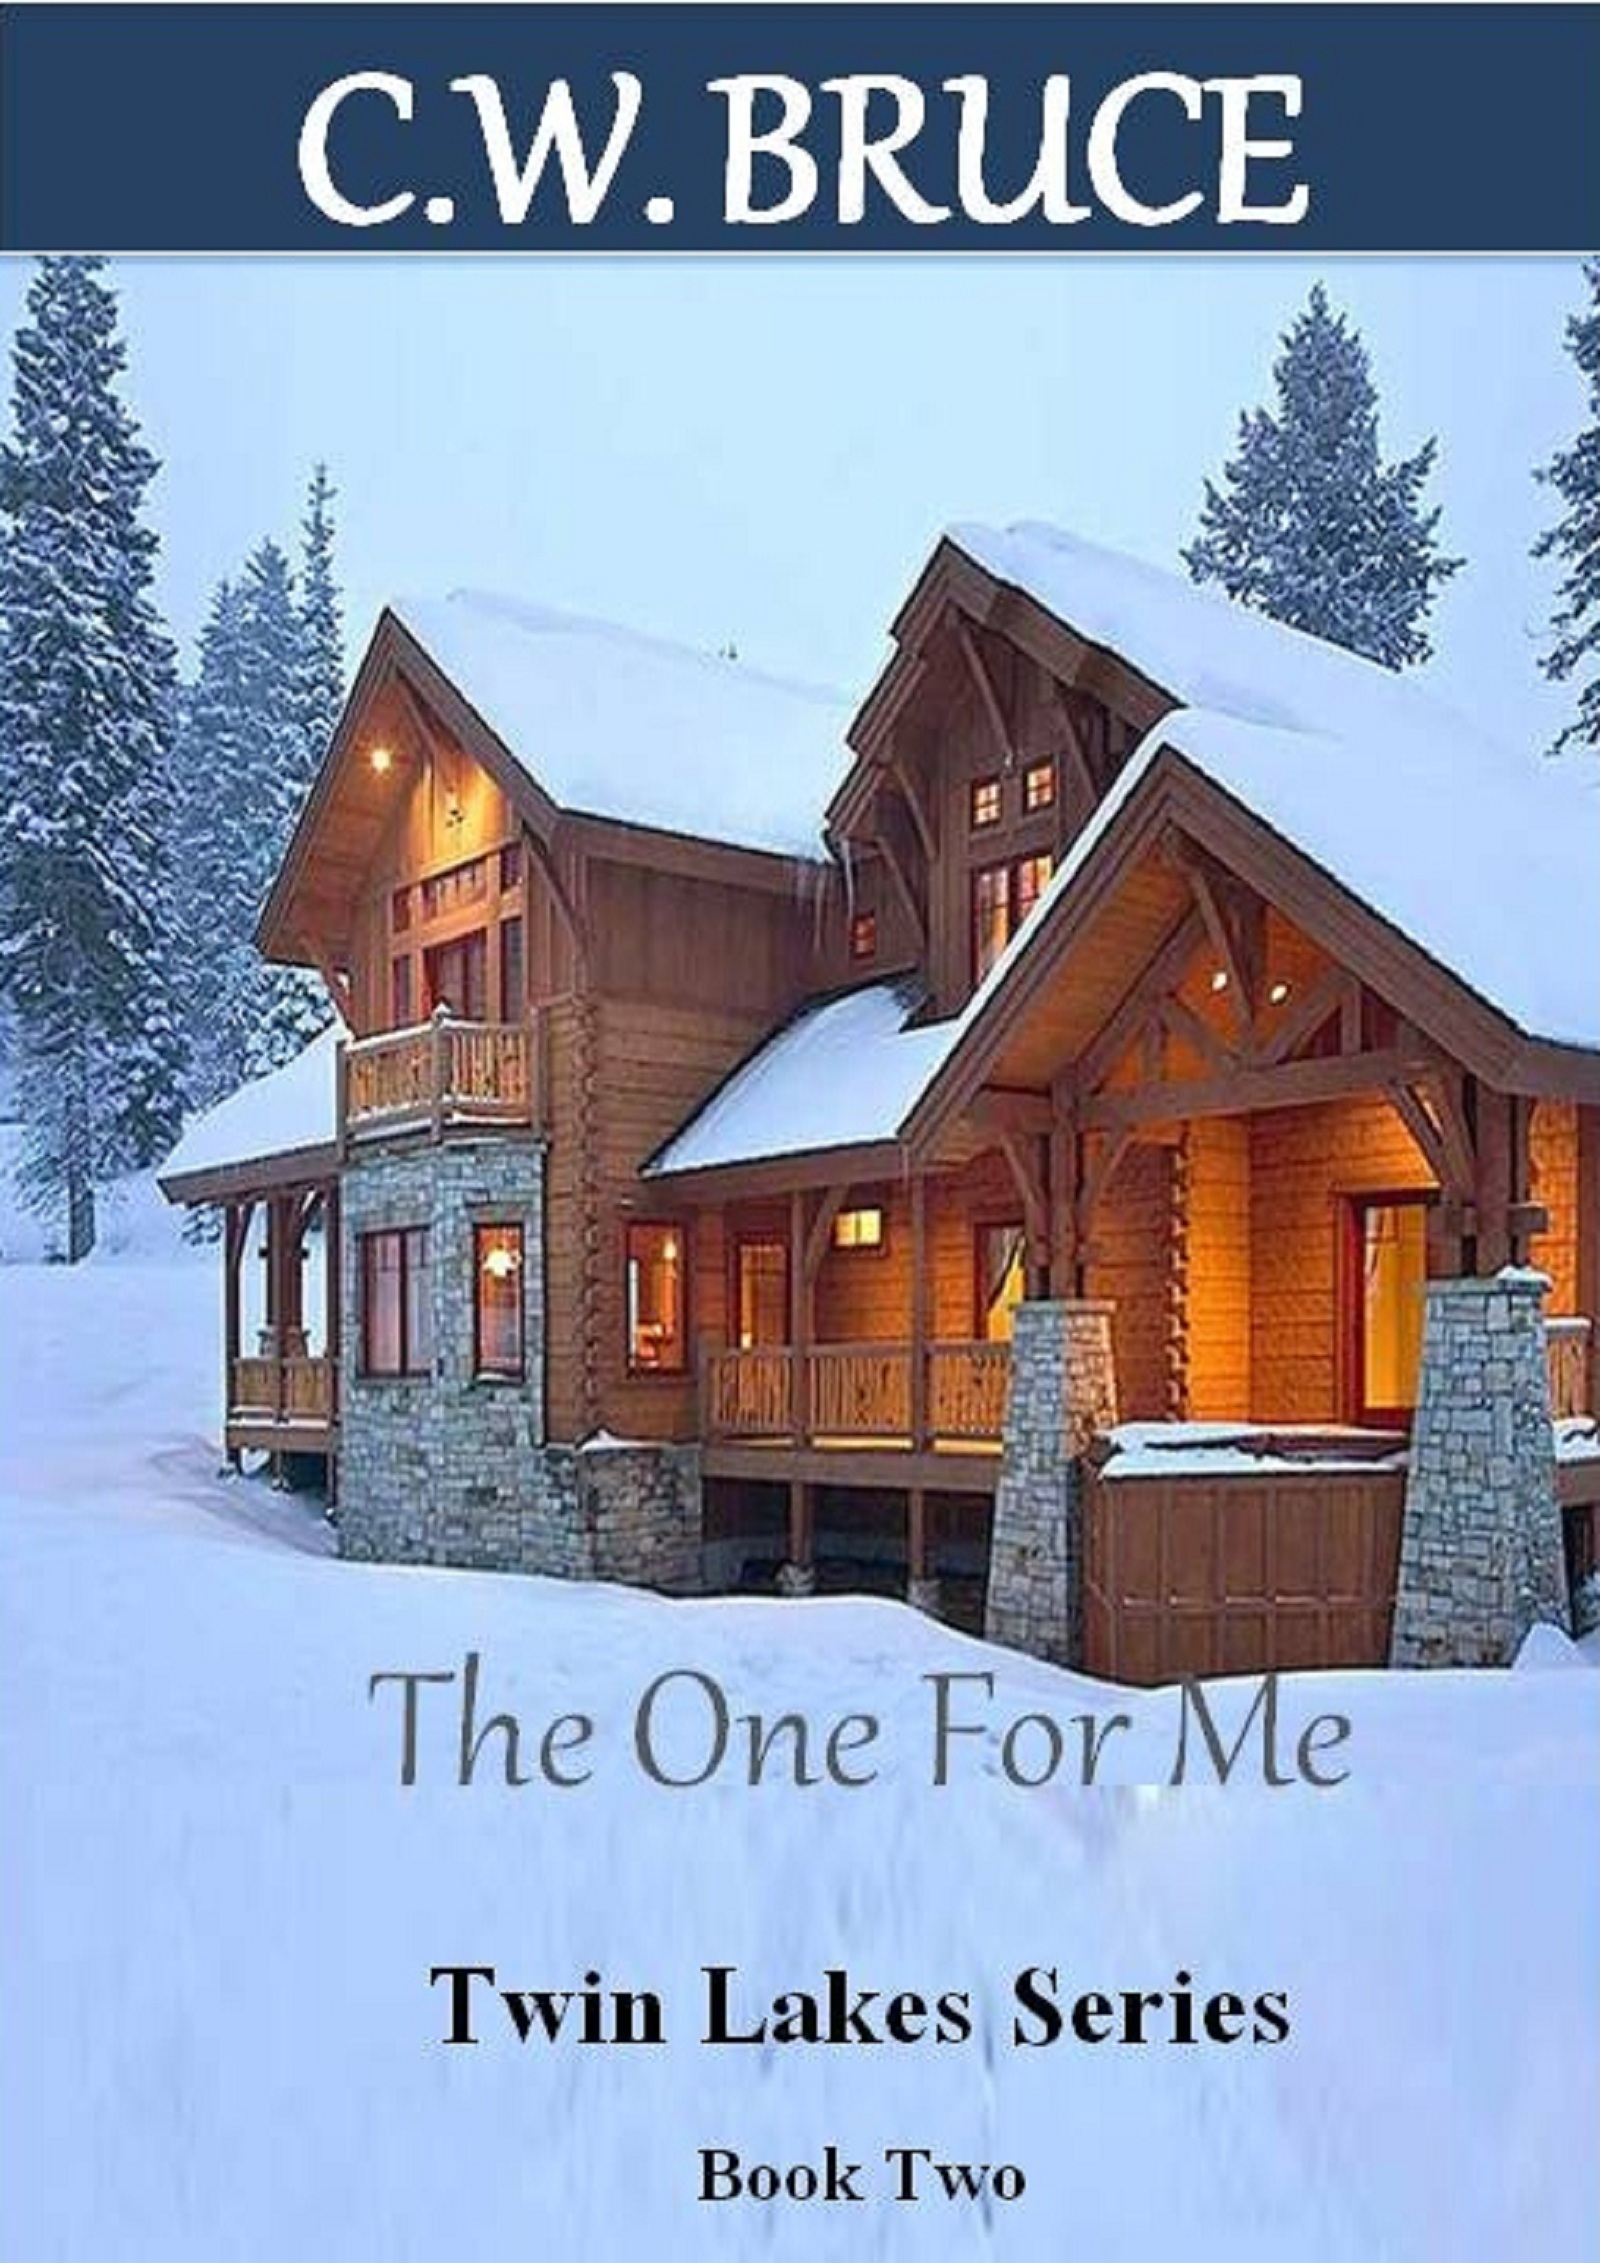 The One For Me: Twin Lakes Series Book 2